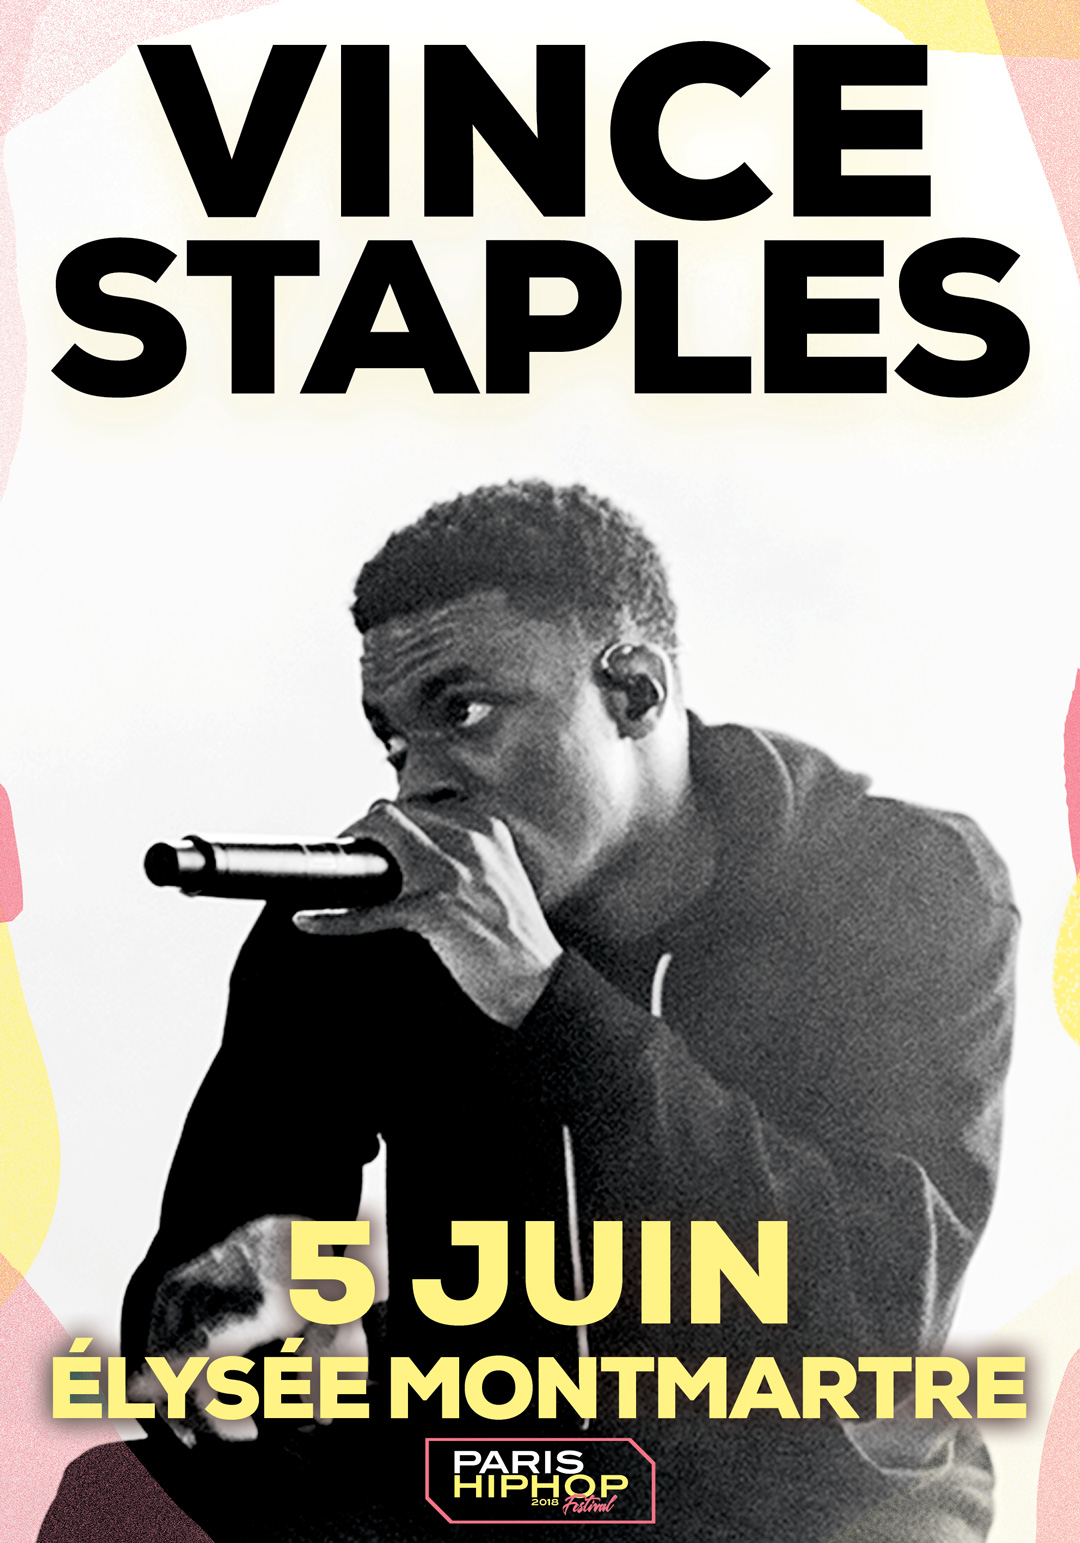 vince staples yard